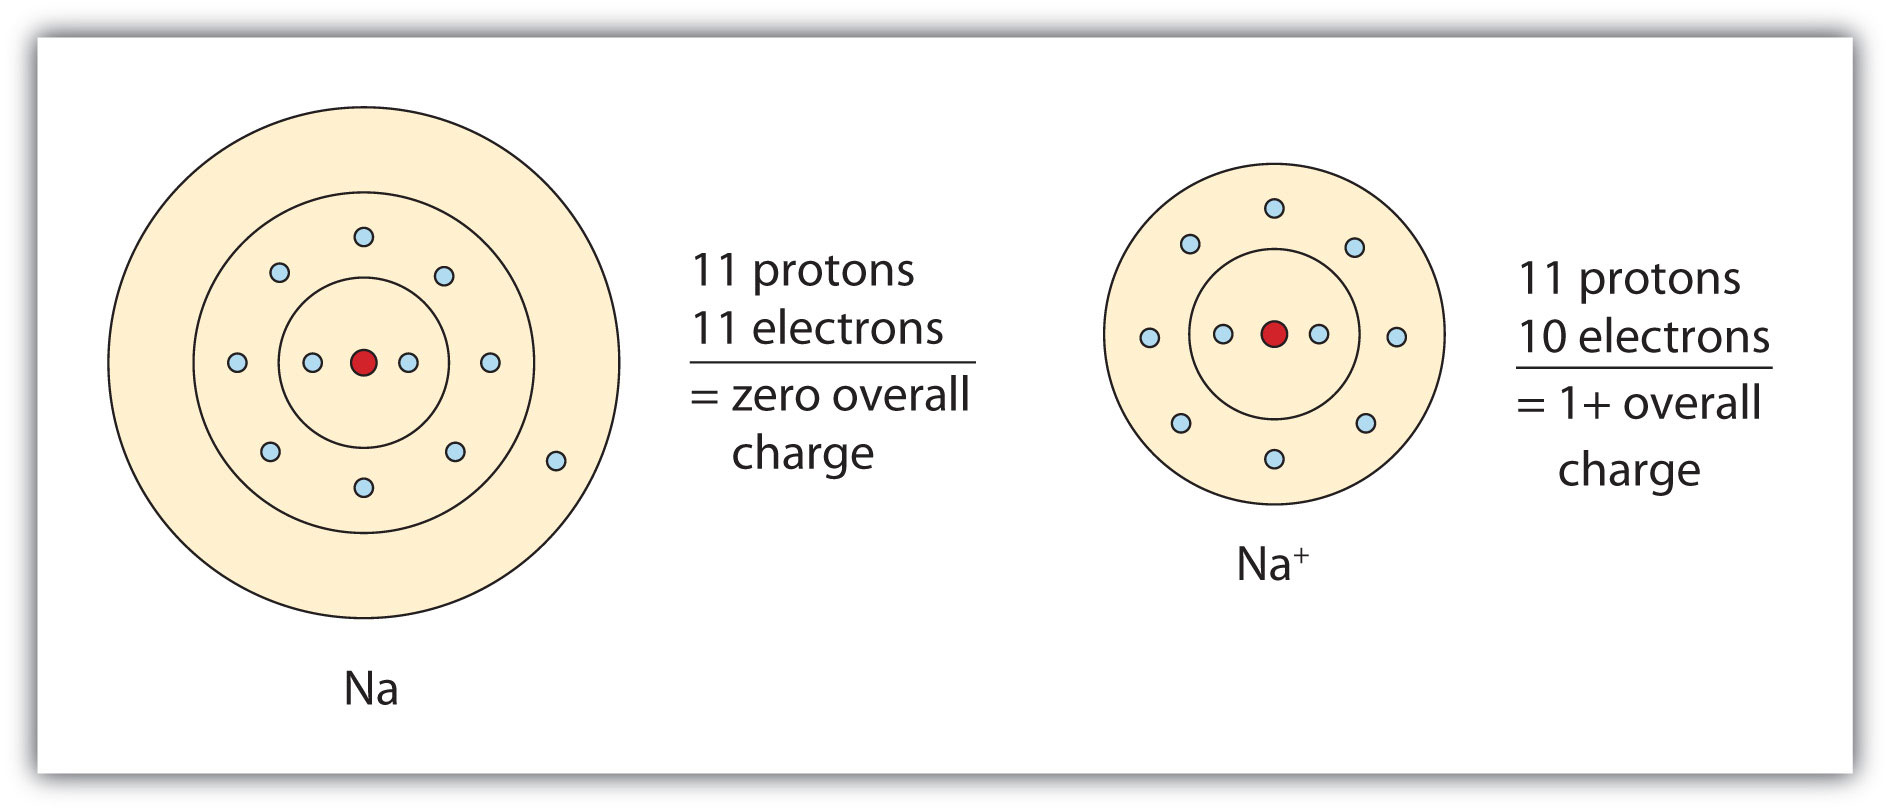 https://www.khanacademy.org/science/chemistry/atomic-structure-and-properties/introduction-to-compounds/a/paul-article-2